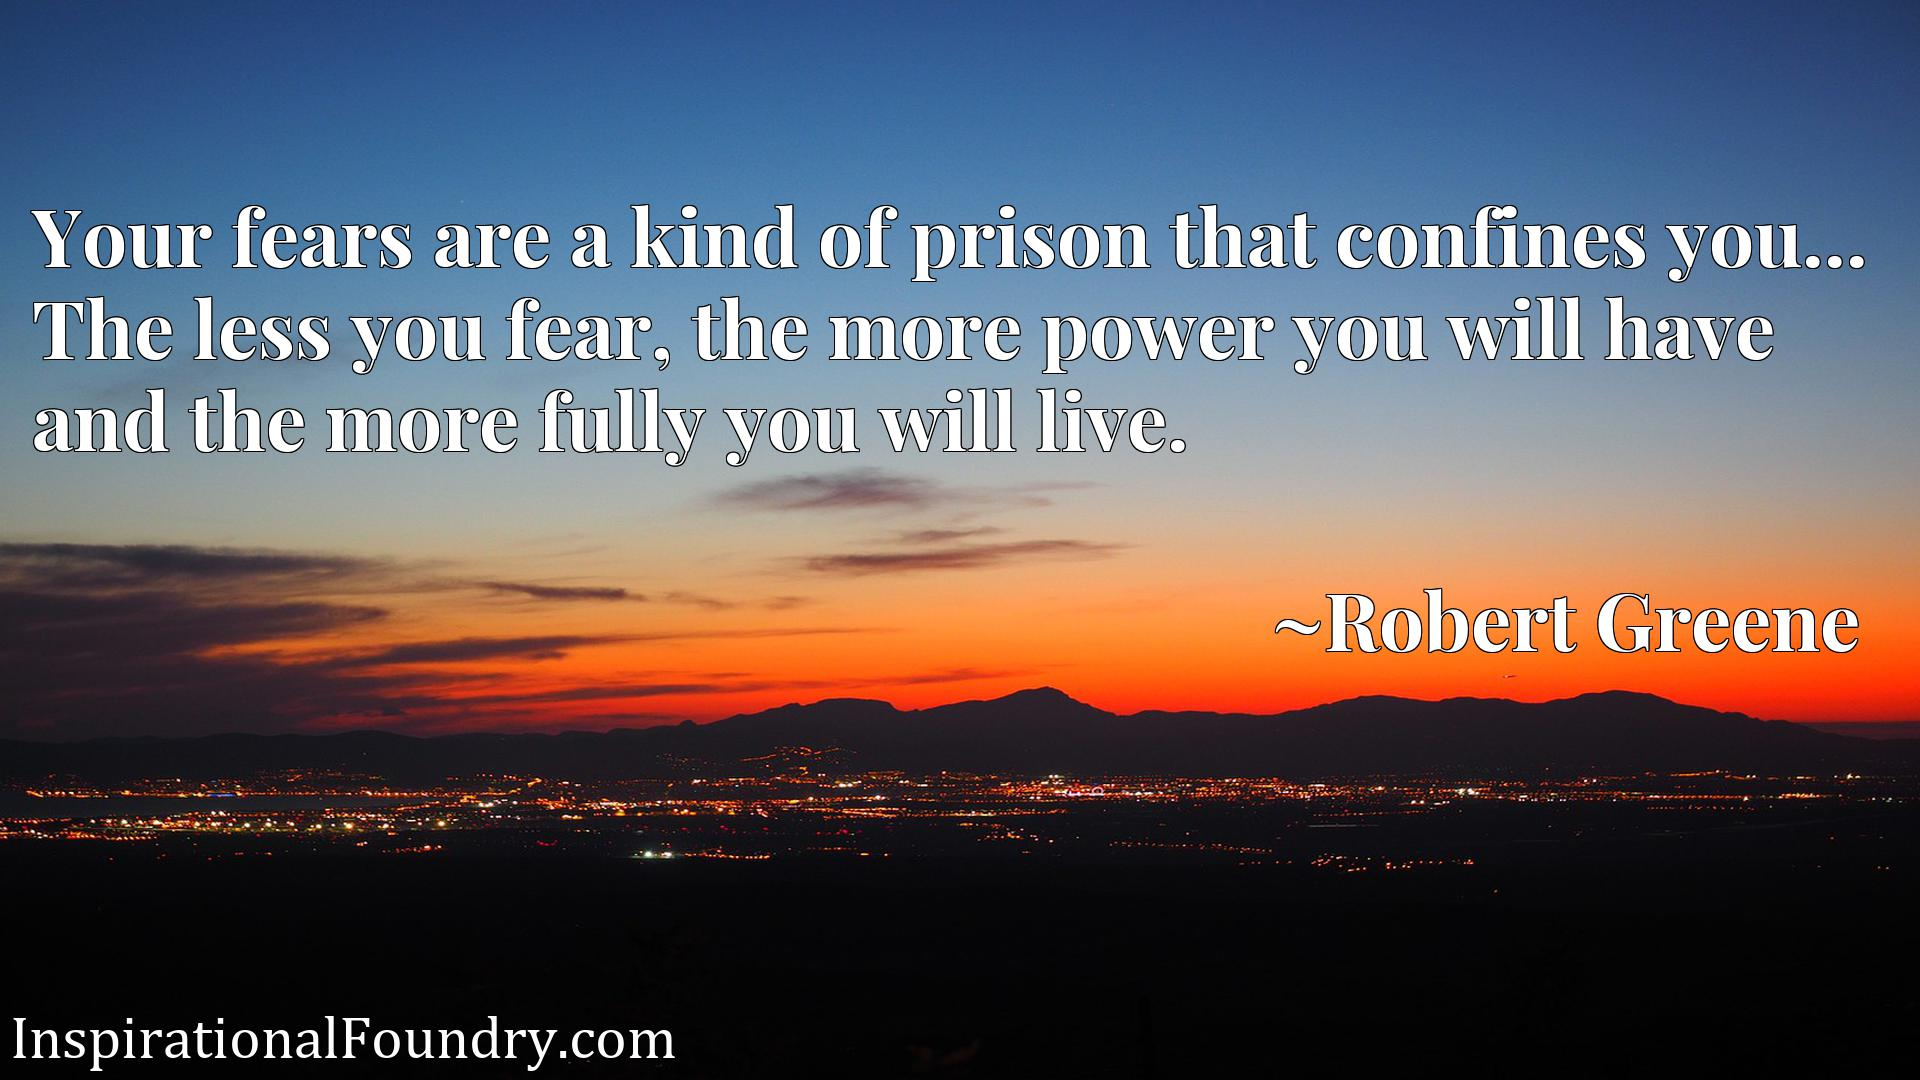 Quote Picture :Your fears are a kind of prison that confines you... The less you fear, the more power you will have and the more fully you will live.